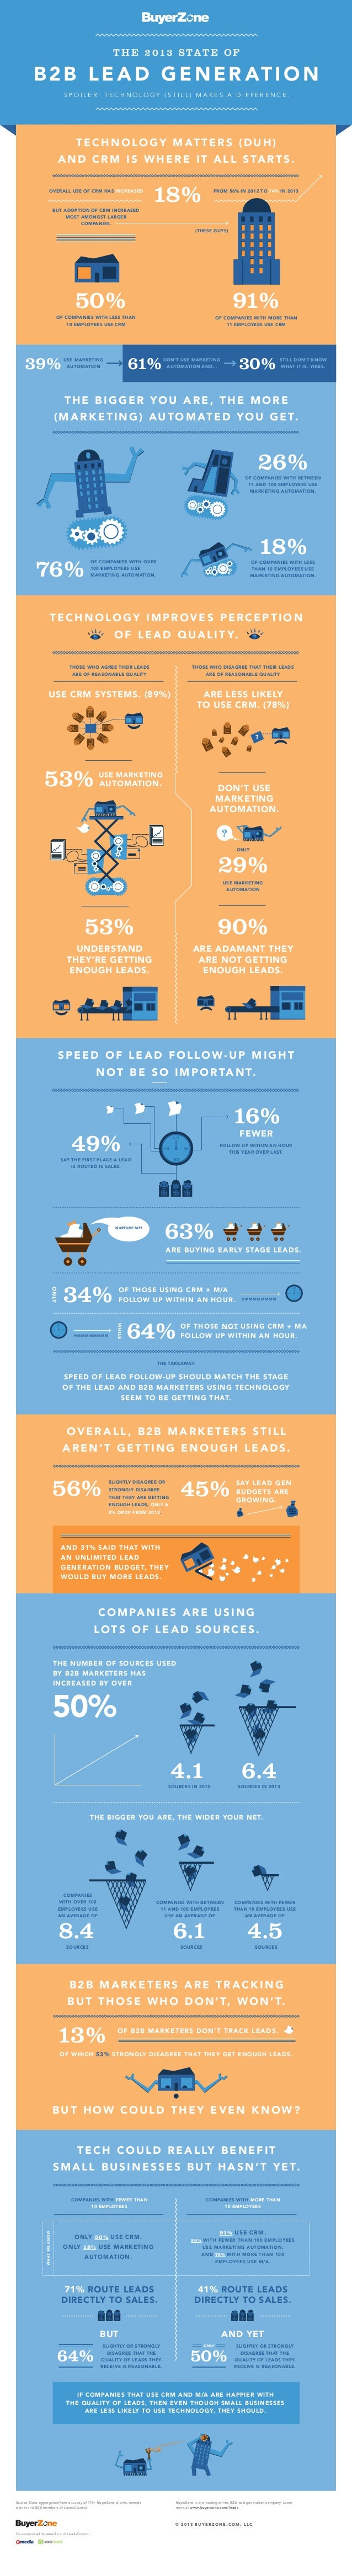 The State of B2B Lead Generation 2013: Infographic